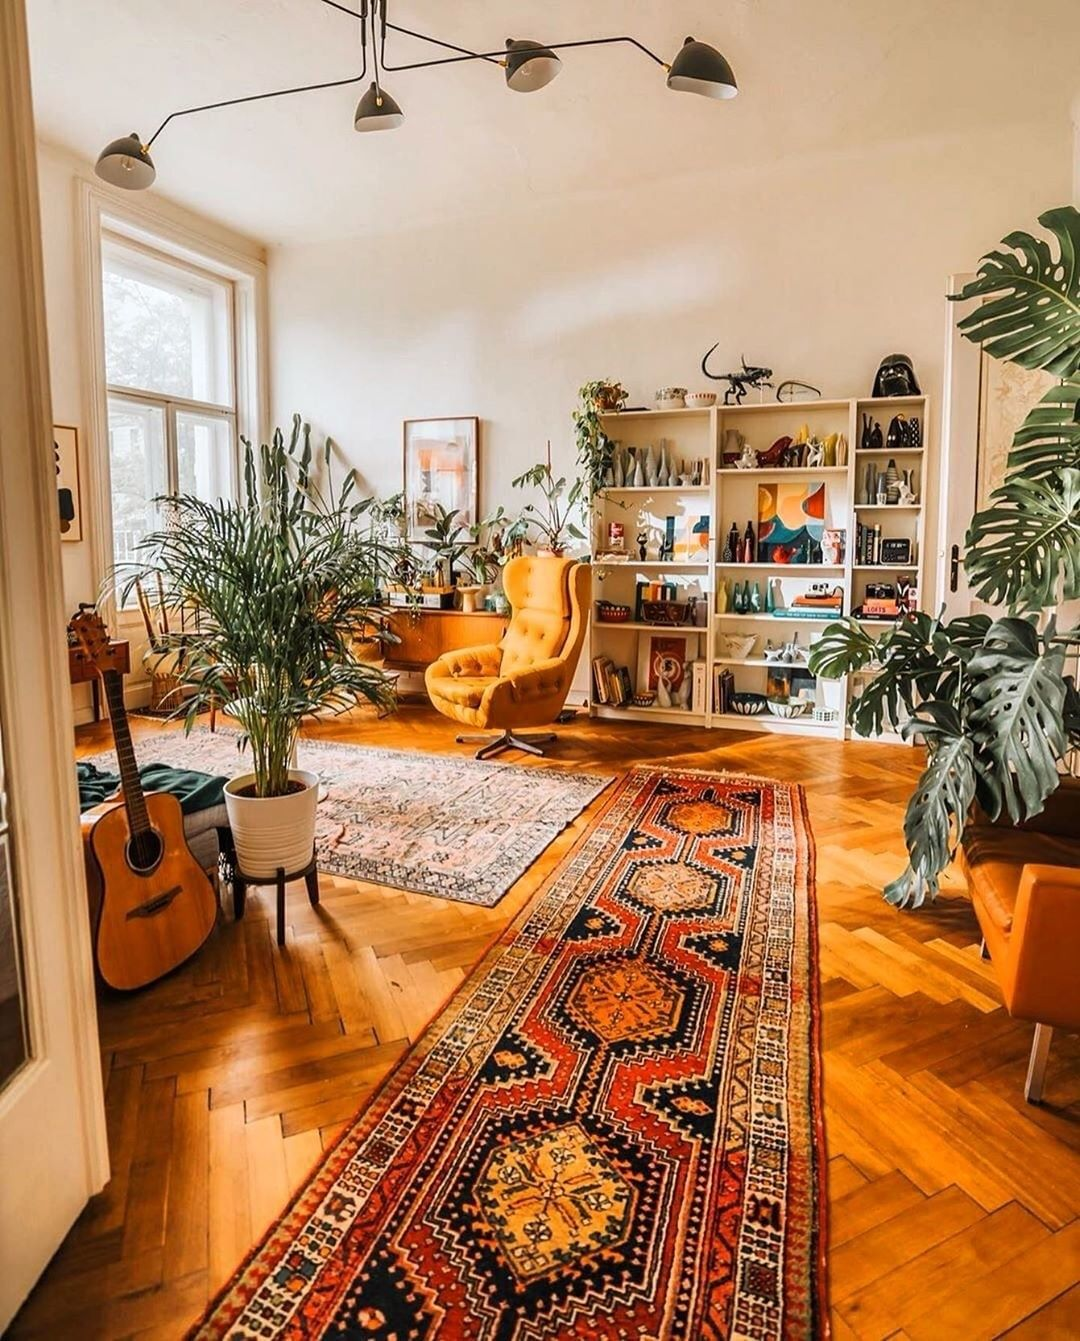 The Sill On Instagram Best Way To Cozy Up A Big Space Patterned Rugs And Lots Of Plants Design Goals By Resty Home Decor Home Living Room Boho Living Room